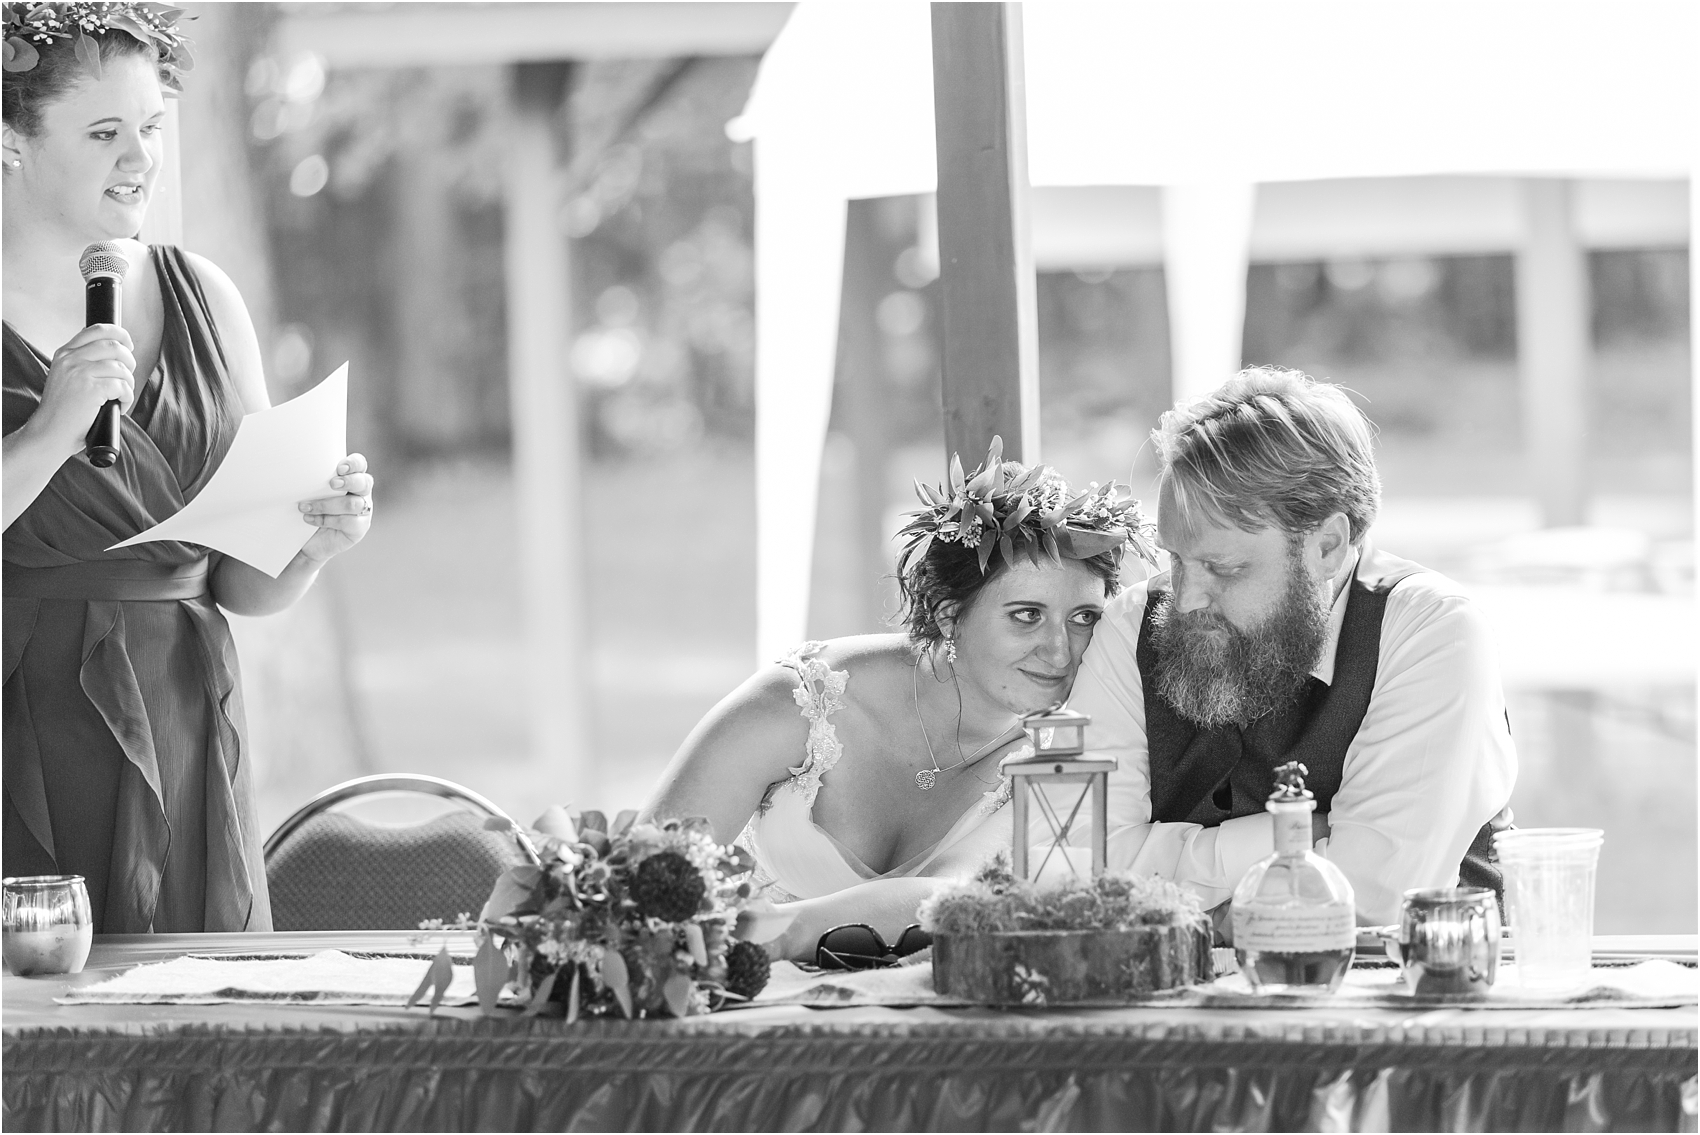 scottish-inspired-wedding-photos-in-the-country-in-port-sanilac-michigan-by-courtney-carolyn-photography_0047.jpg